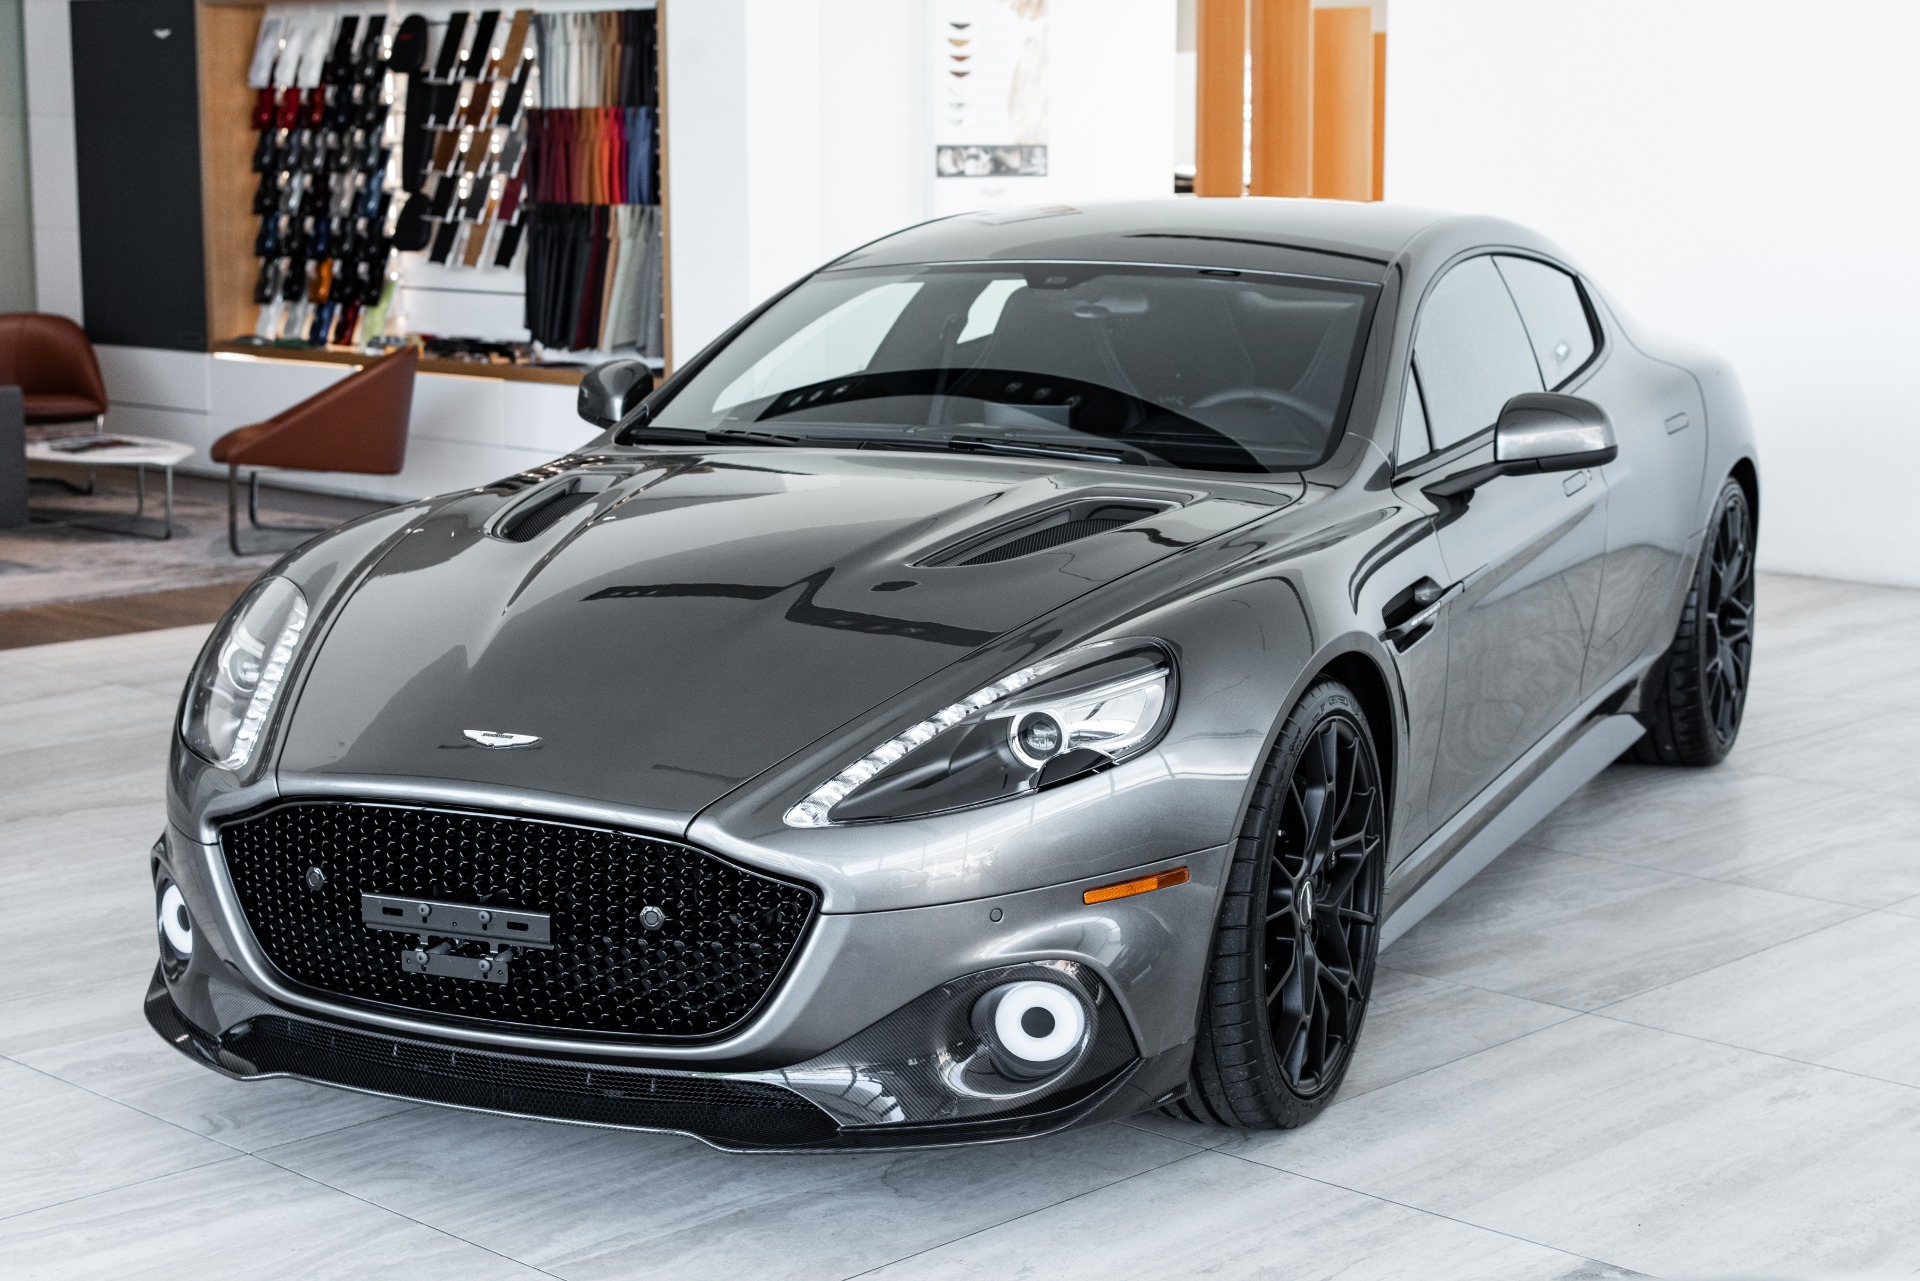 Lease Specials Near Me >> 2019 ASTON MARTIN RAPIDE Stock # 9NF06297 for sale near ...